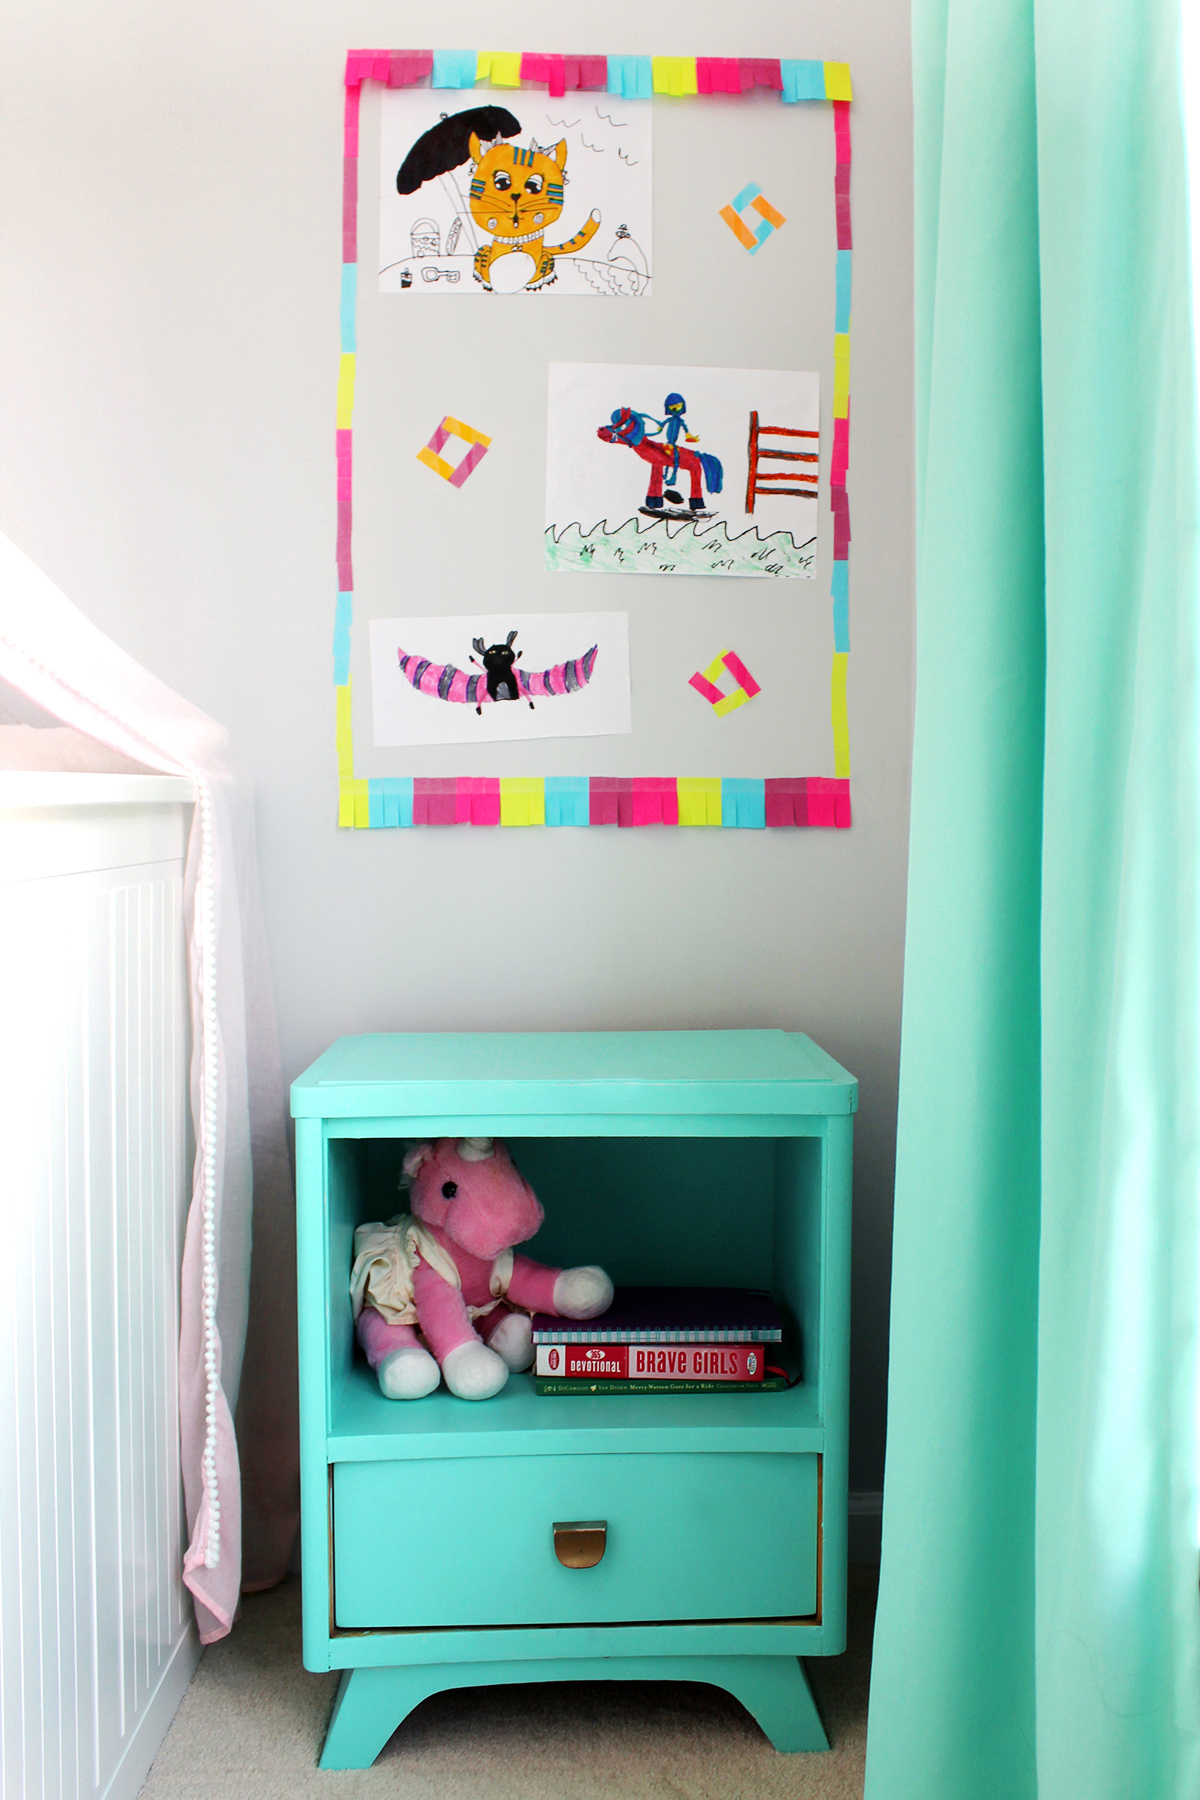 Make a creative art gallery wall with summer art projects #BackToSchoolGoals18 #ad